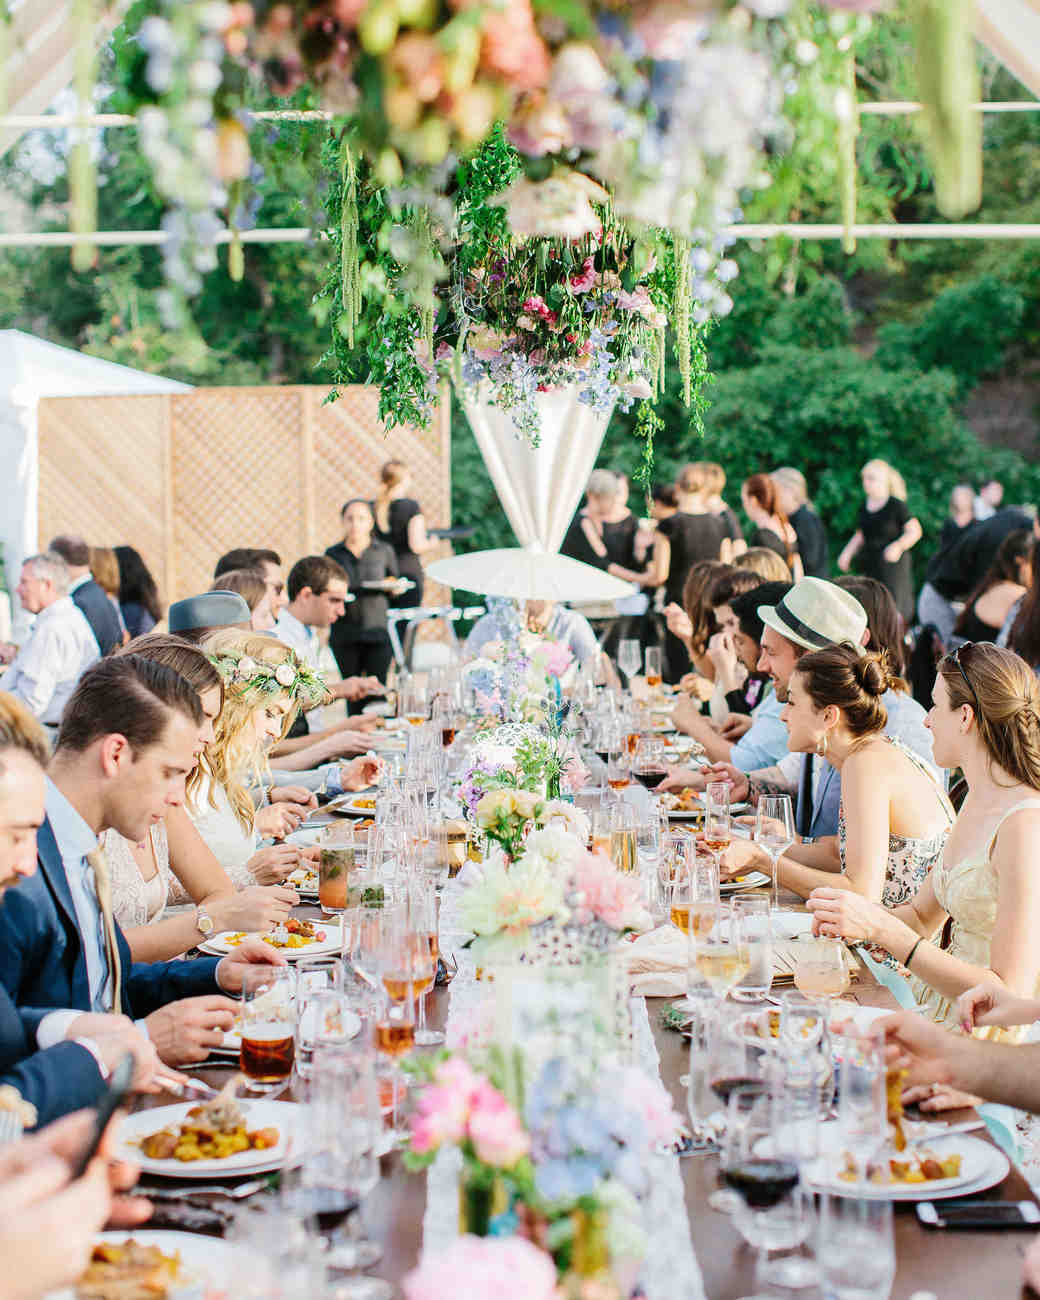 15 Outdoor Wedding Ideas That Are Totally Genius: An Eclectic, Outdoor Wedding In The Escondido Mountains